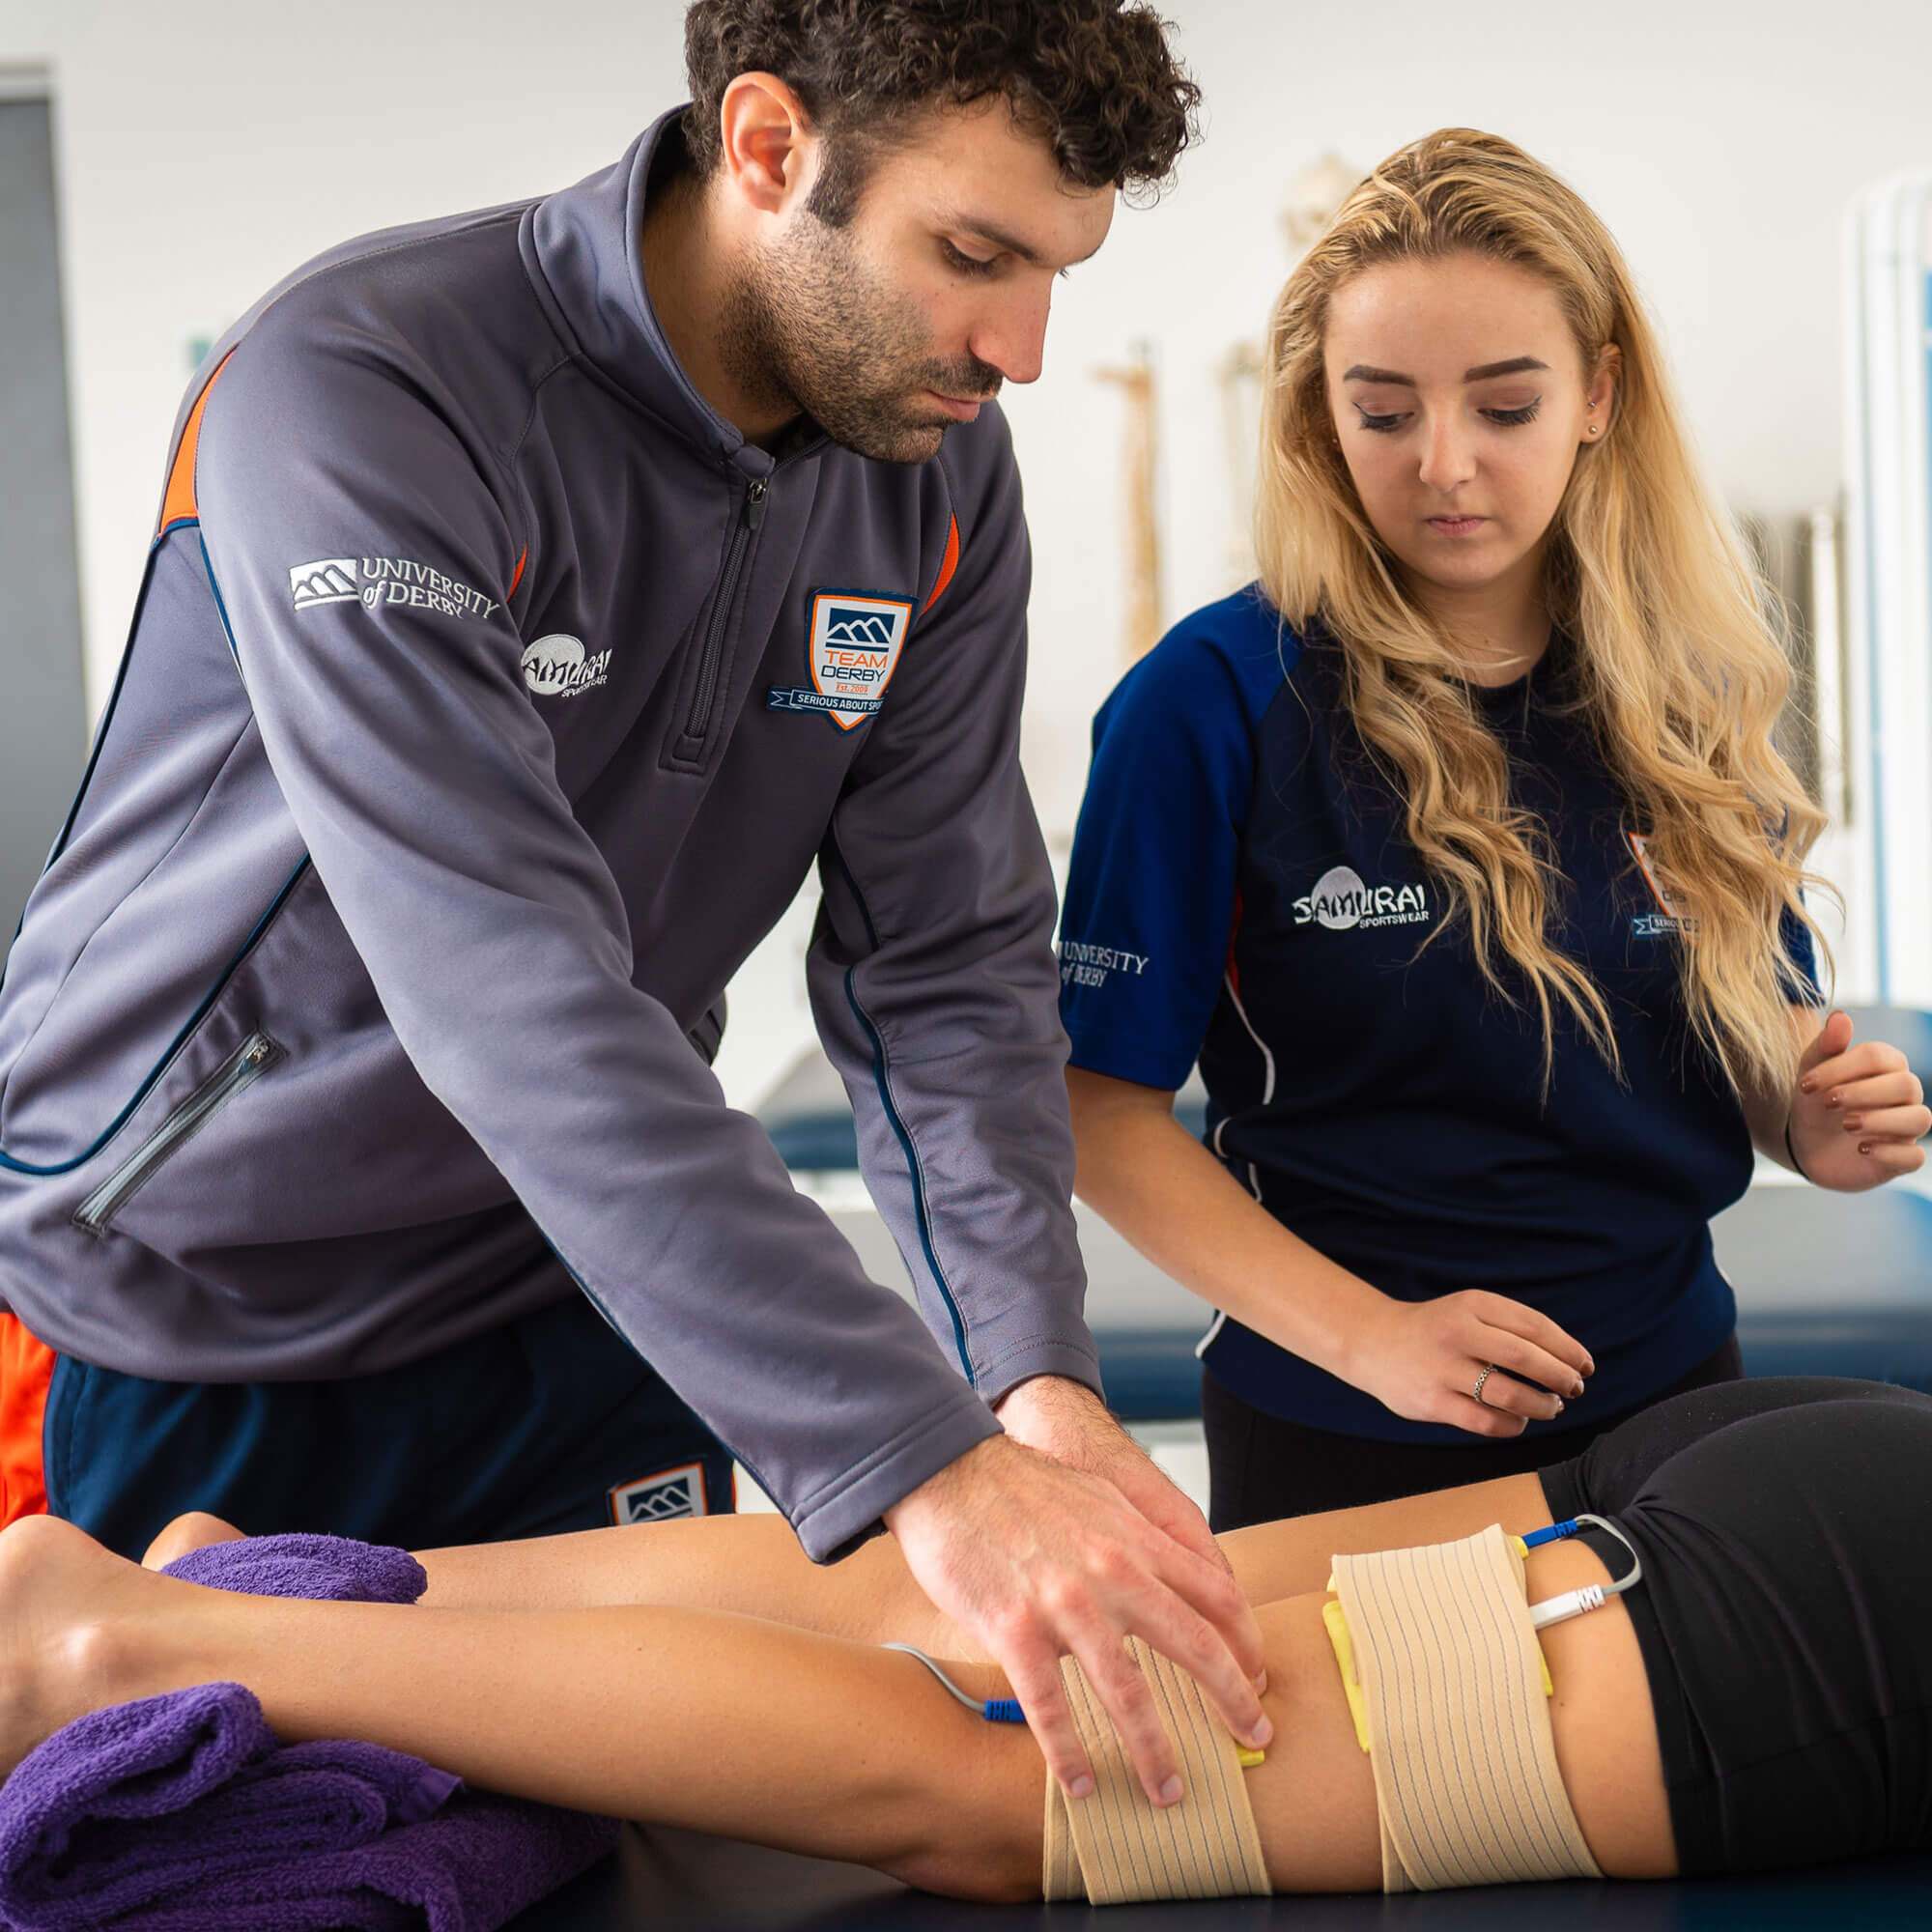 Sports therapy student treating patient with assistance of an academic